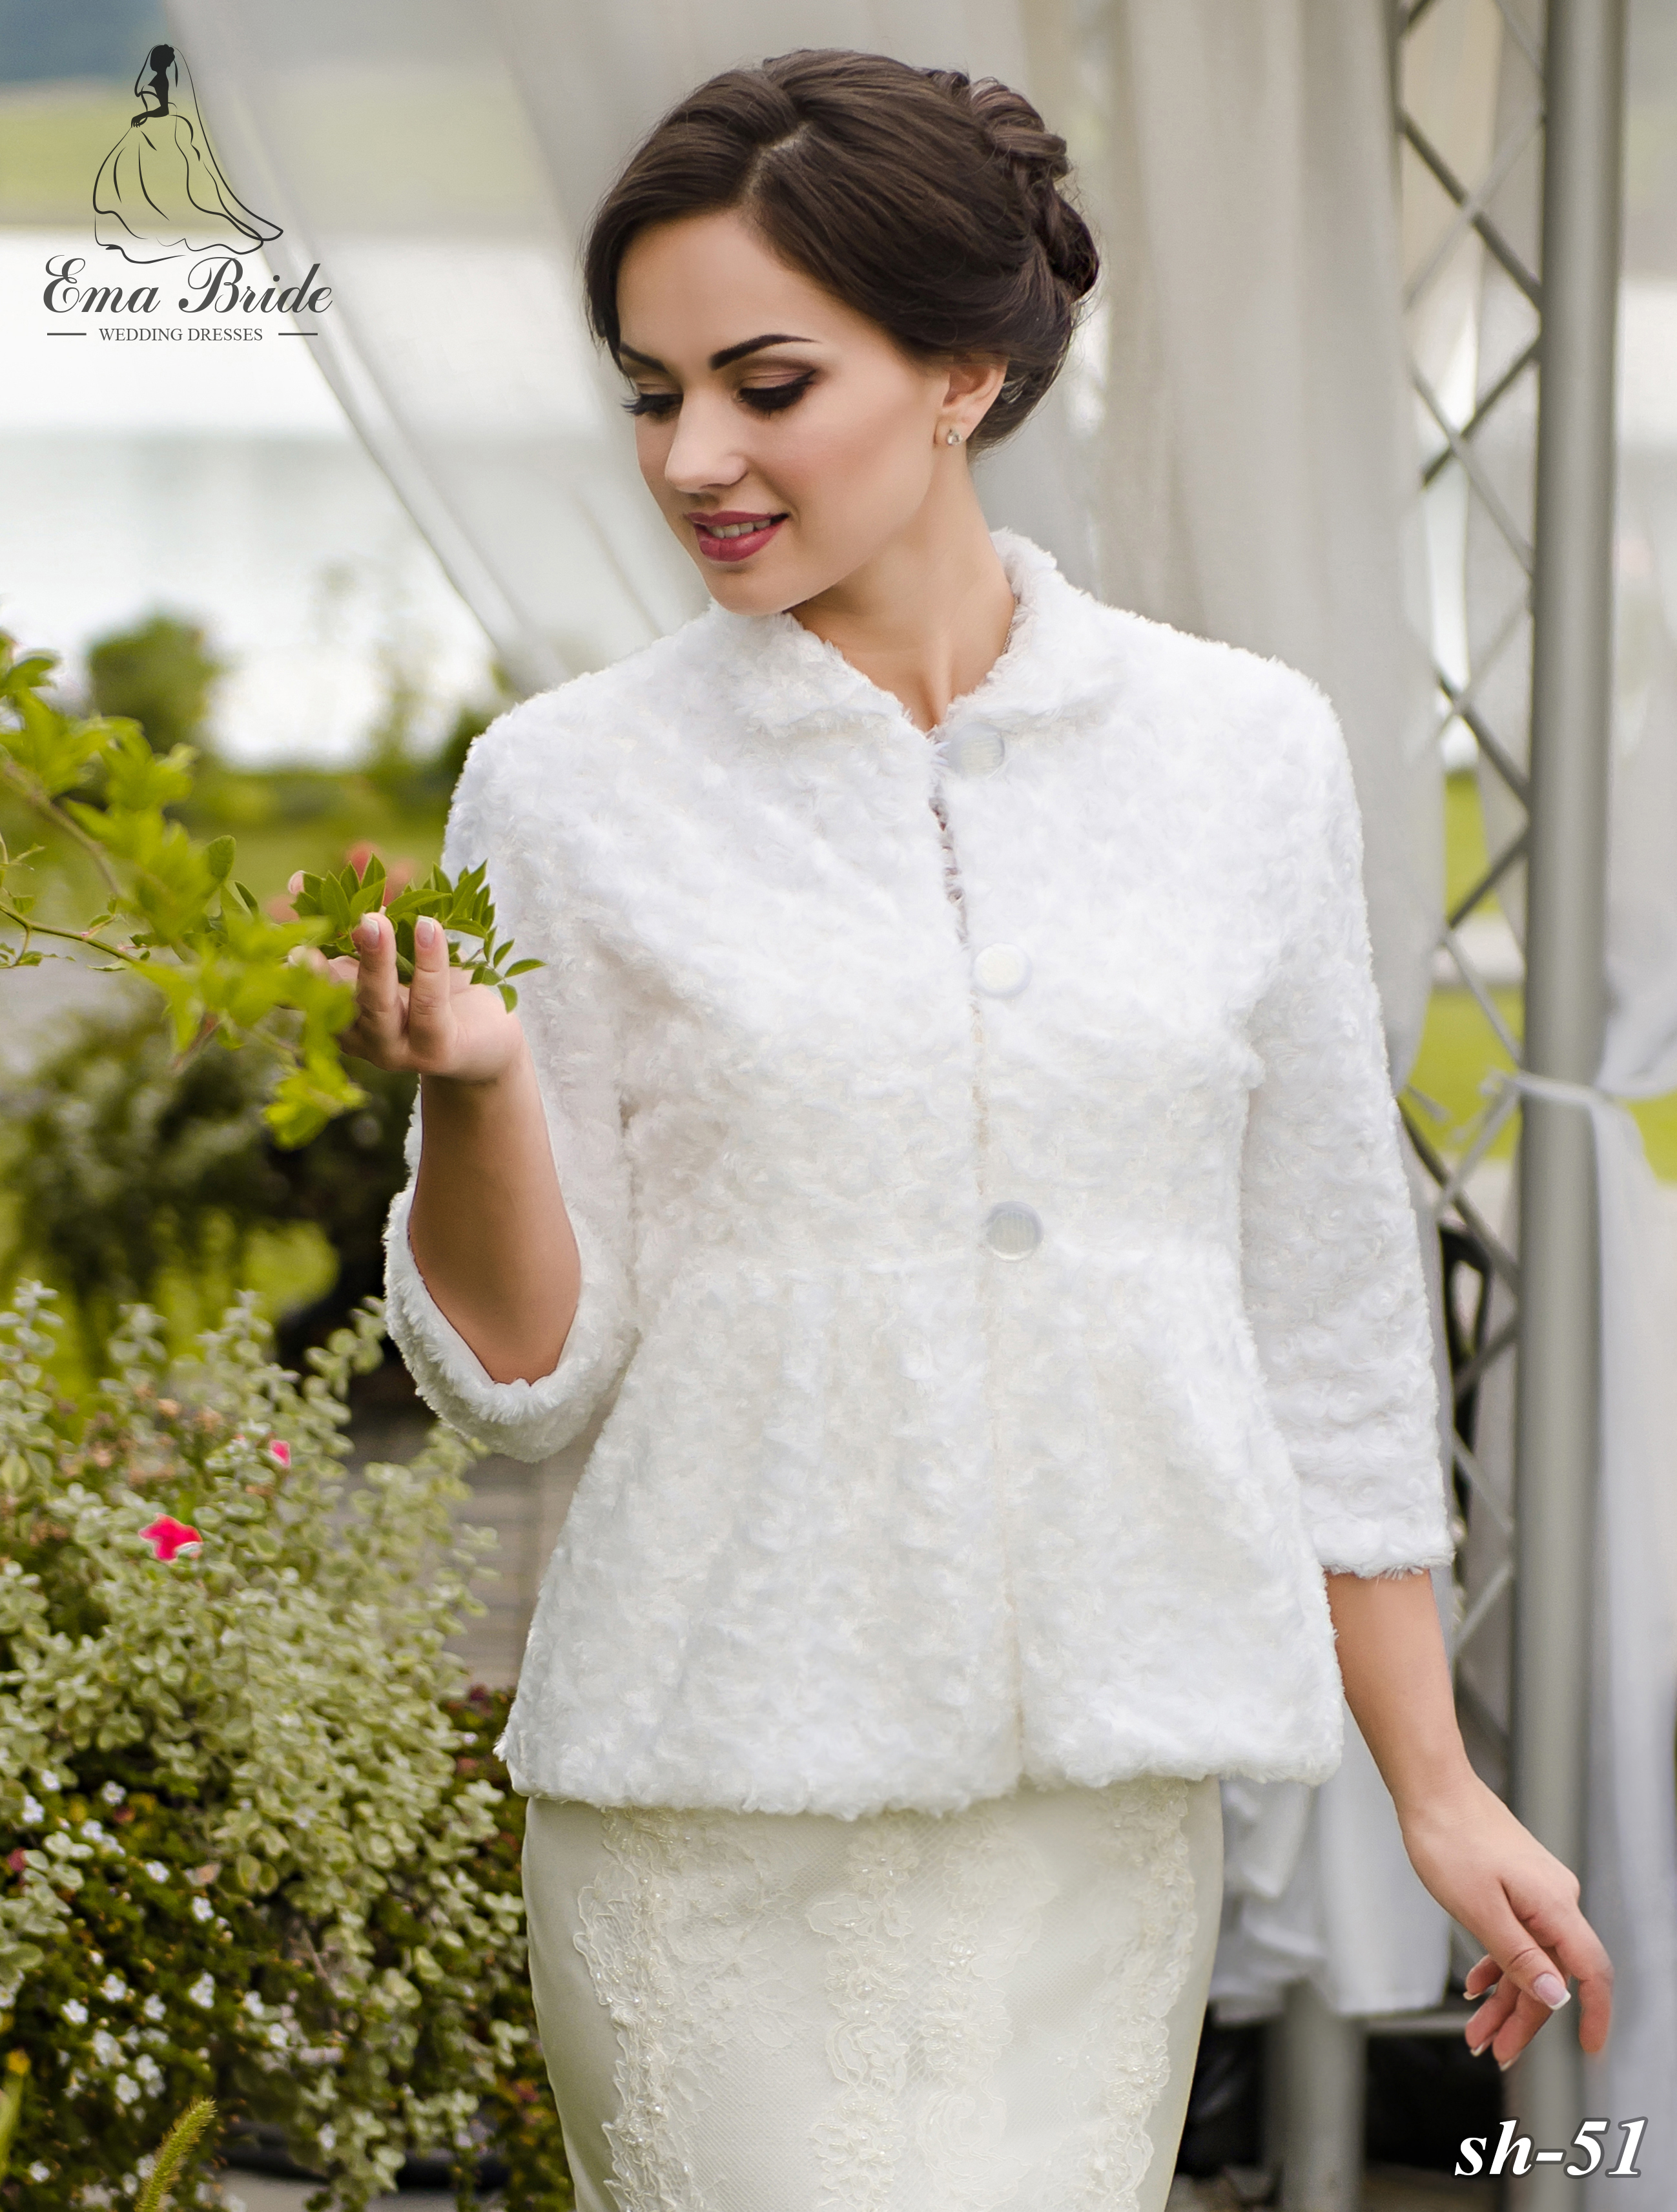 Wedding fur coat SH-51